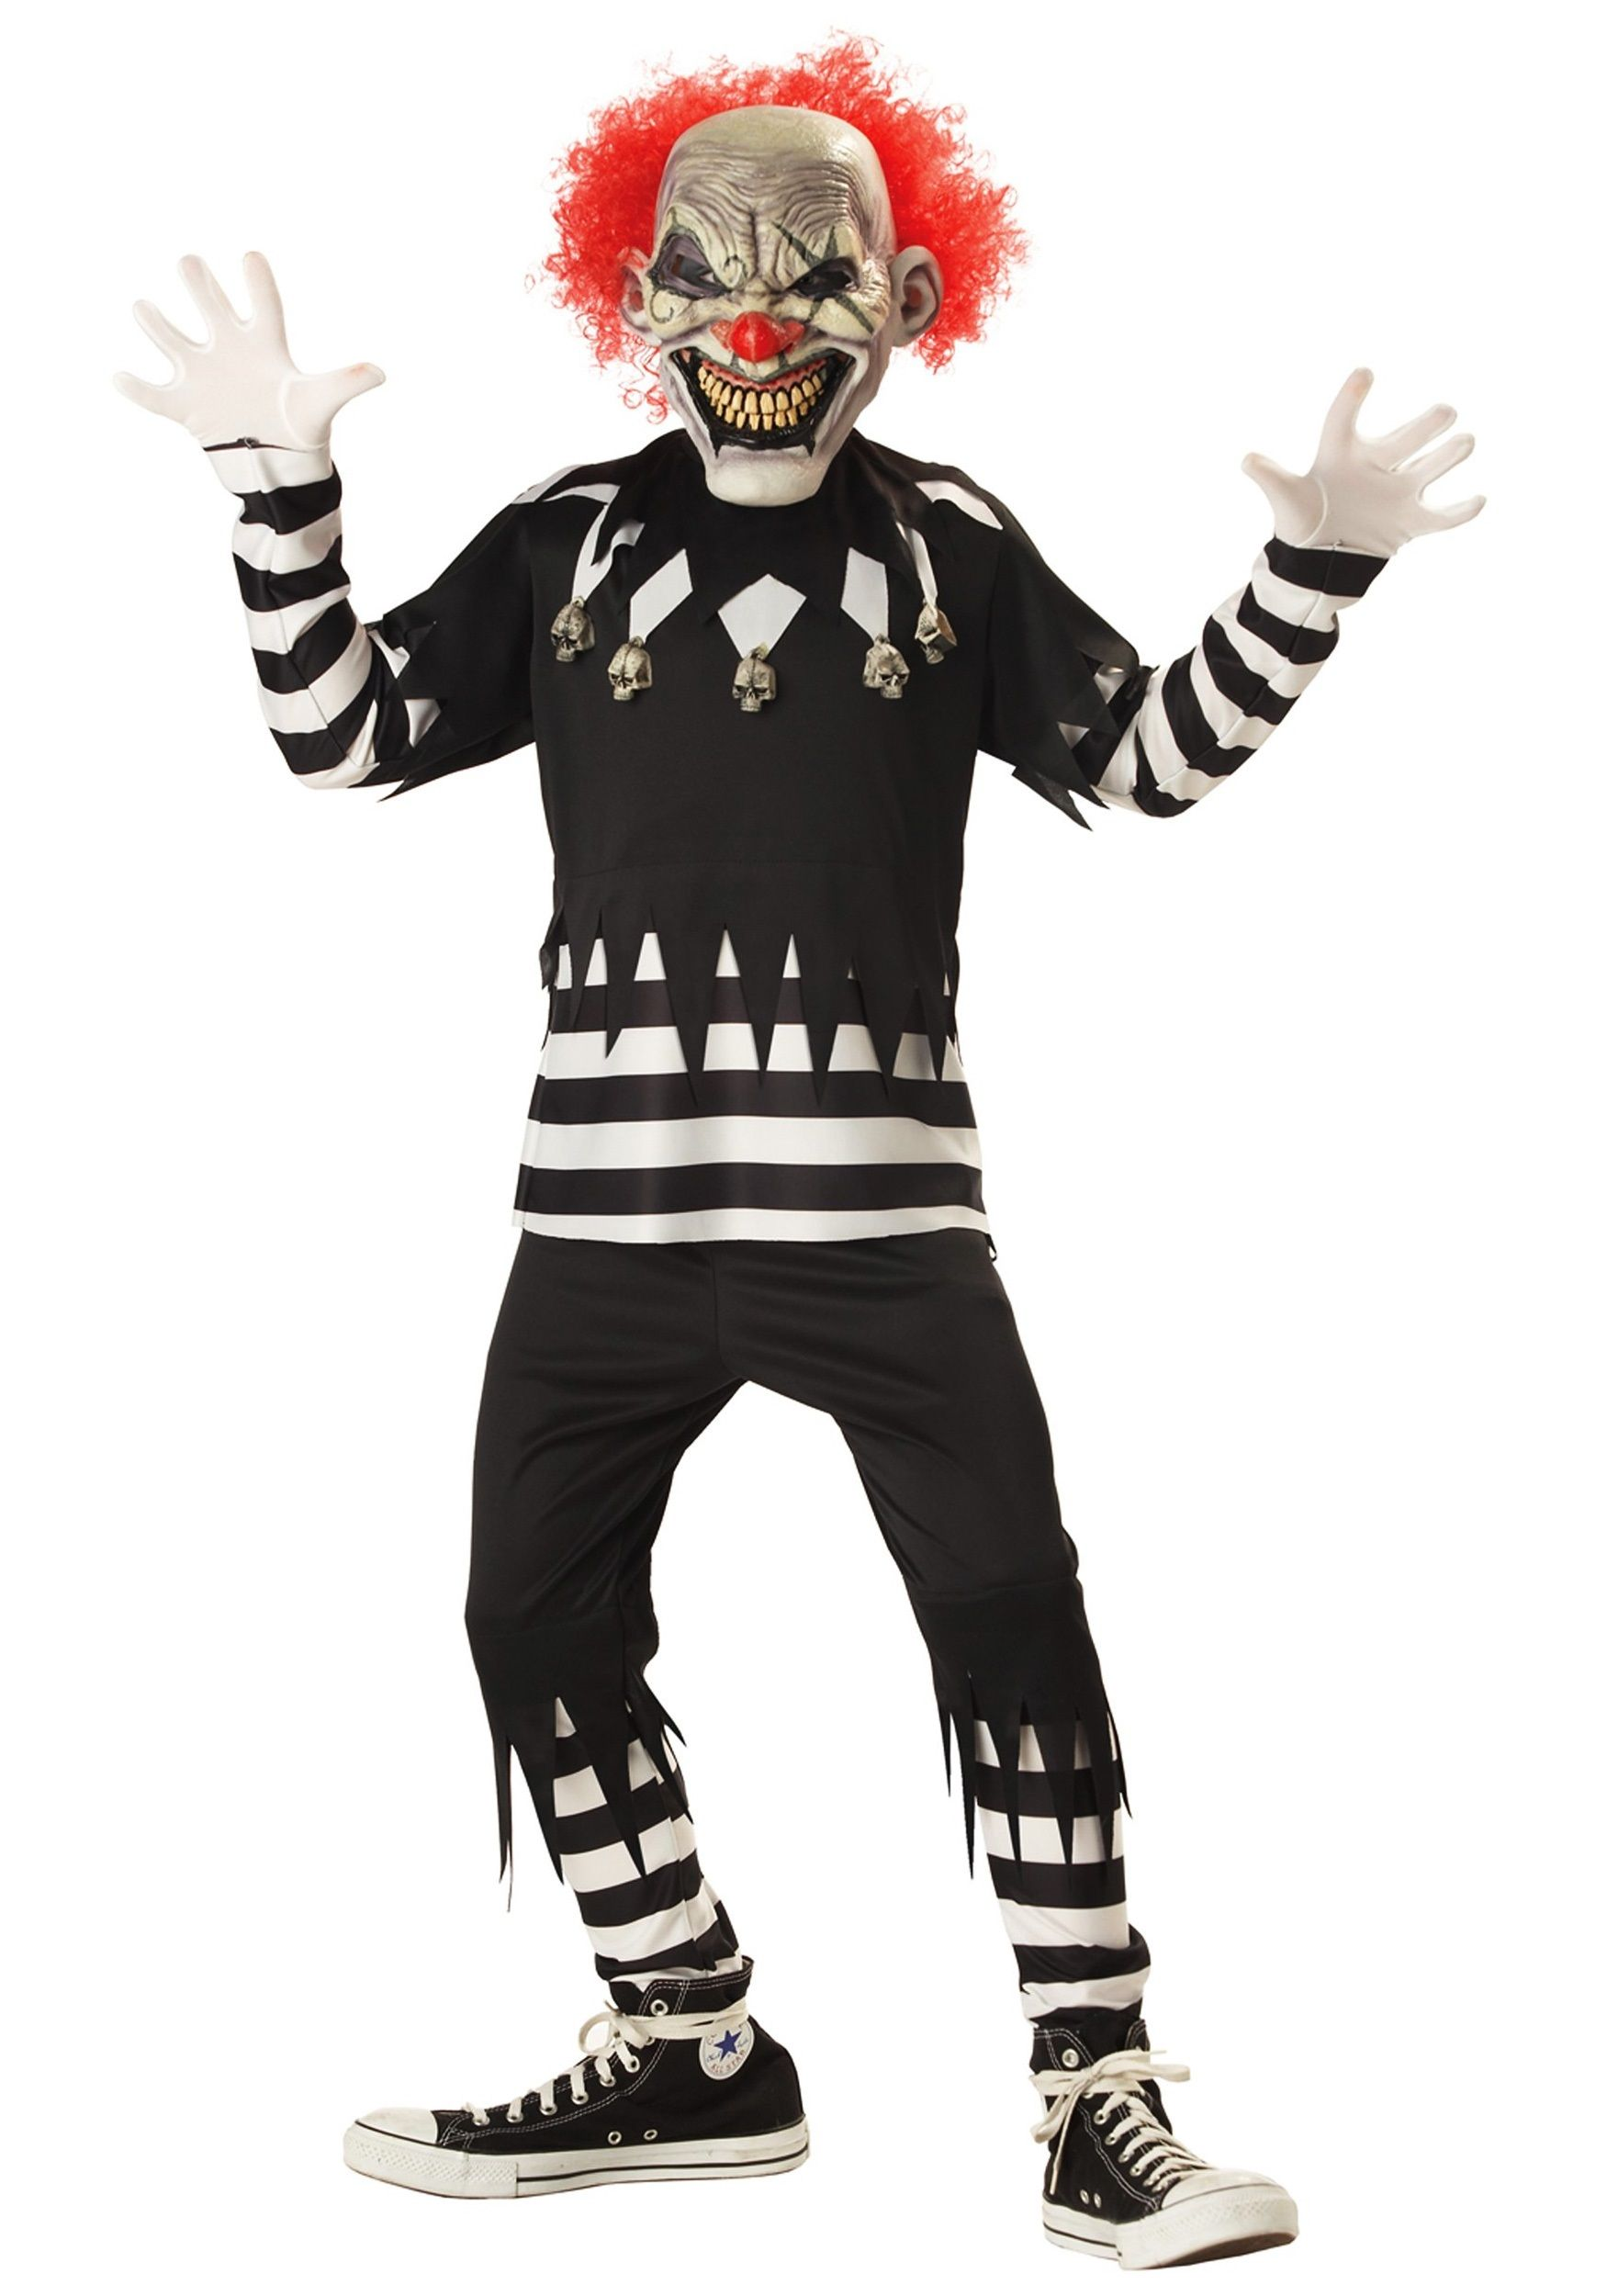 Kids Psycho Clown Costume | Costumes, Baby halloween costumes and ...